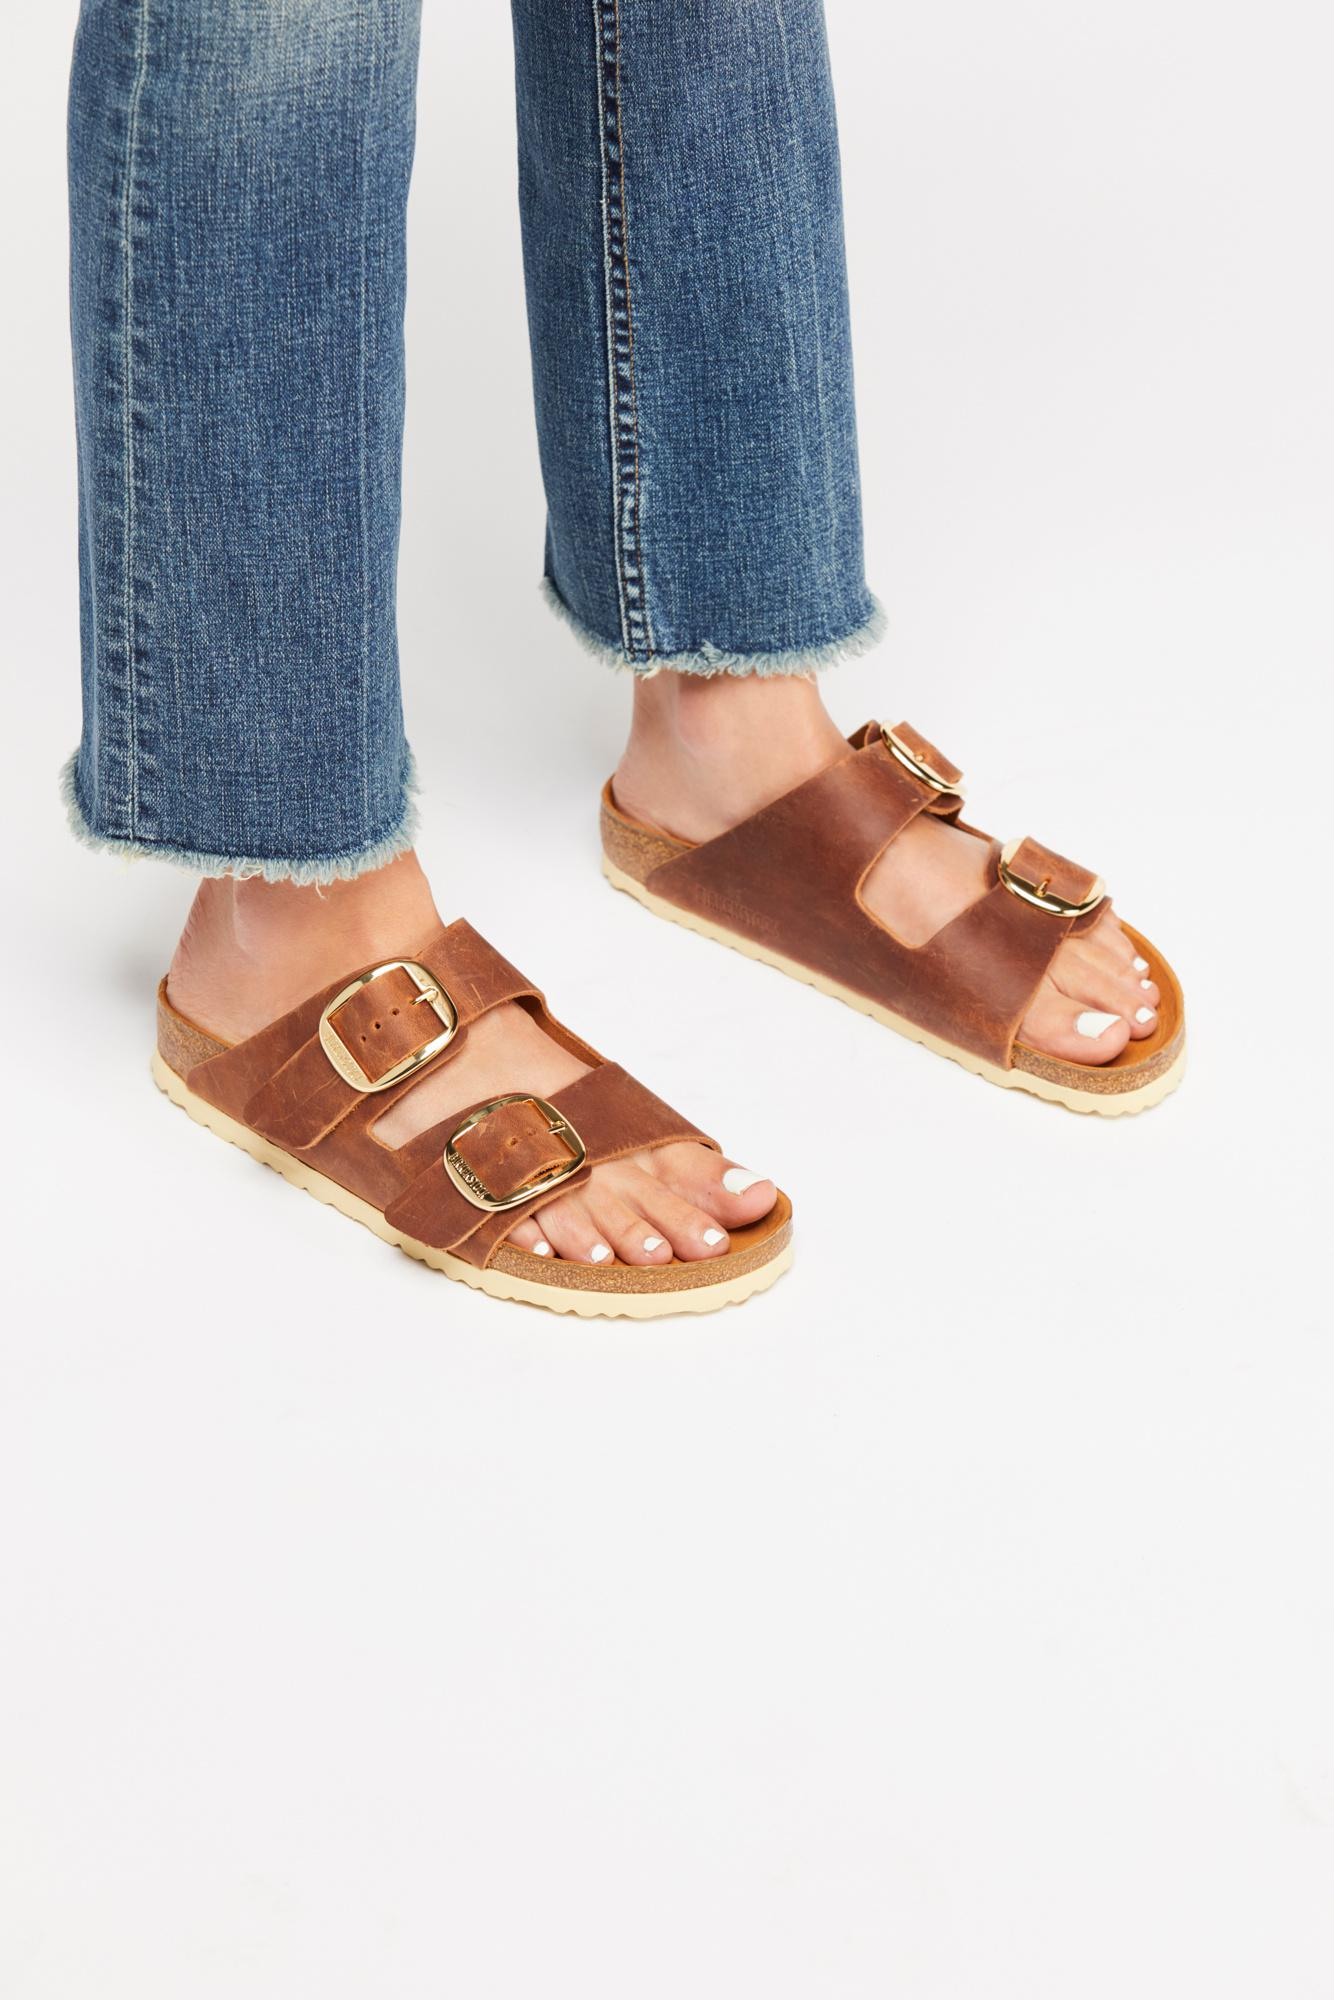 f07ae5ce9cf5e Free People. Women s Arizona Big Buckle Birkenstock Sandal